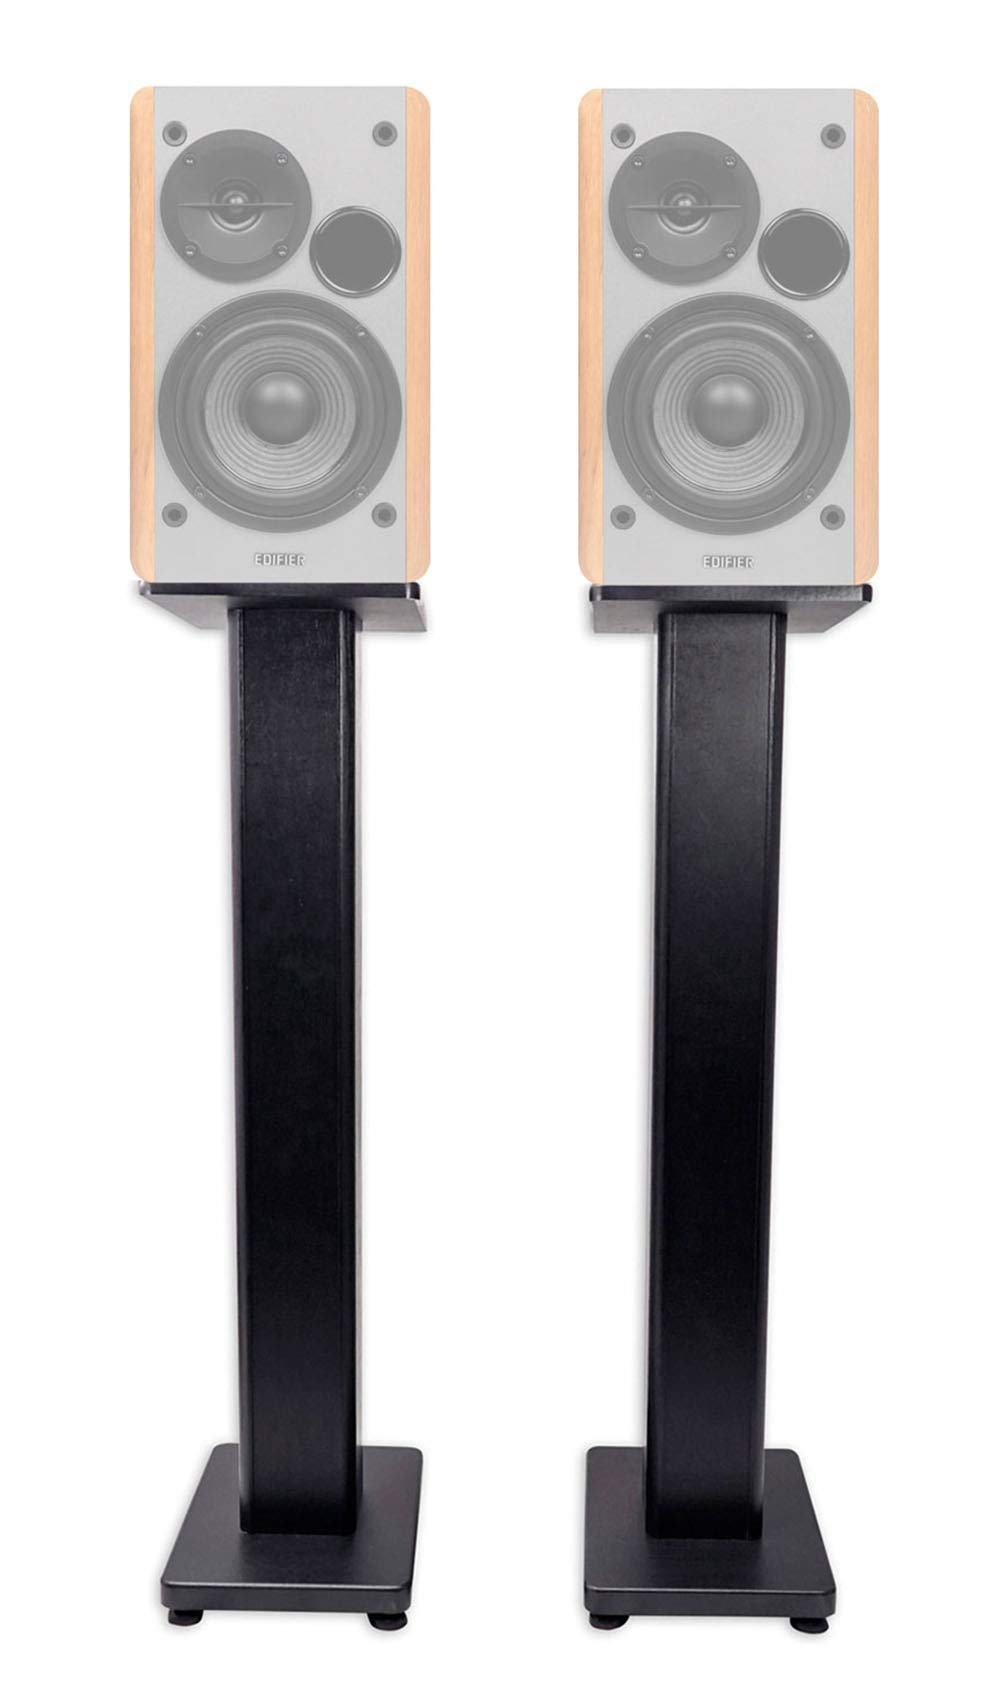 Pair 28'' Bookshelf Speaker Stands For Edifier R1280T Bookshelf Speakers-The Stands are not created by Edifier by Rockville